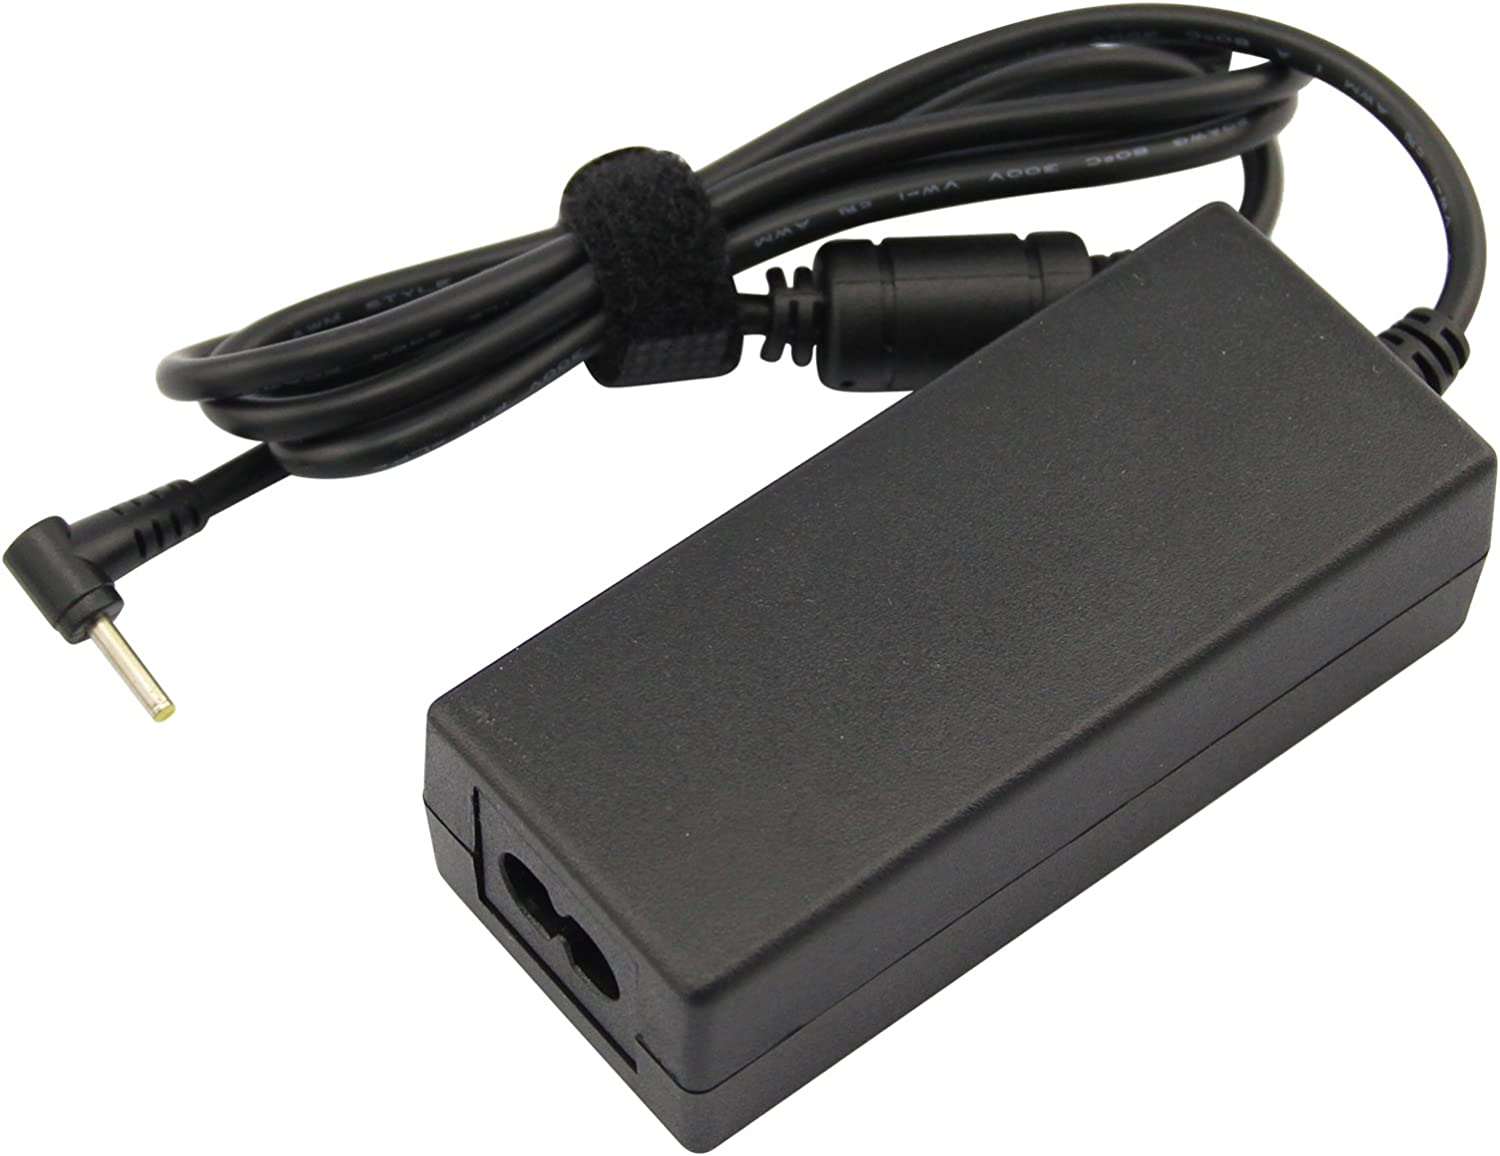 Futurebatt AC Adapter Charger 19V 2.1A for ASUS Eee PC 1005HA 1005PE 1005PEB 1005PR 1001P 1001PX 1002HA 1005P 1008HA 1101HA 1015P 1015PN 1016P 1018P 1101HA 1106HA 1201HA 1215N 1225B Power Supply Cord